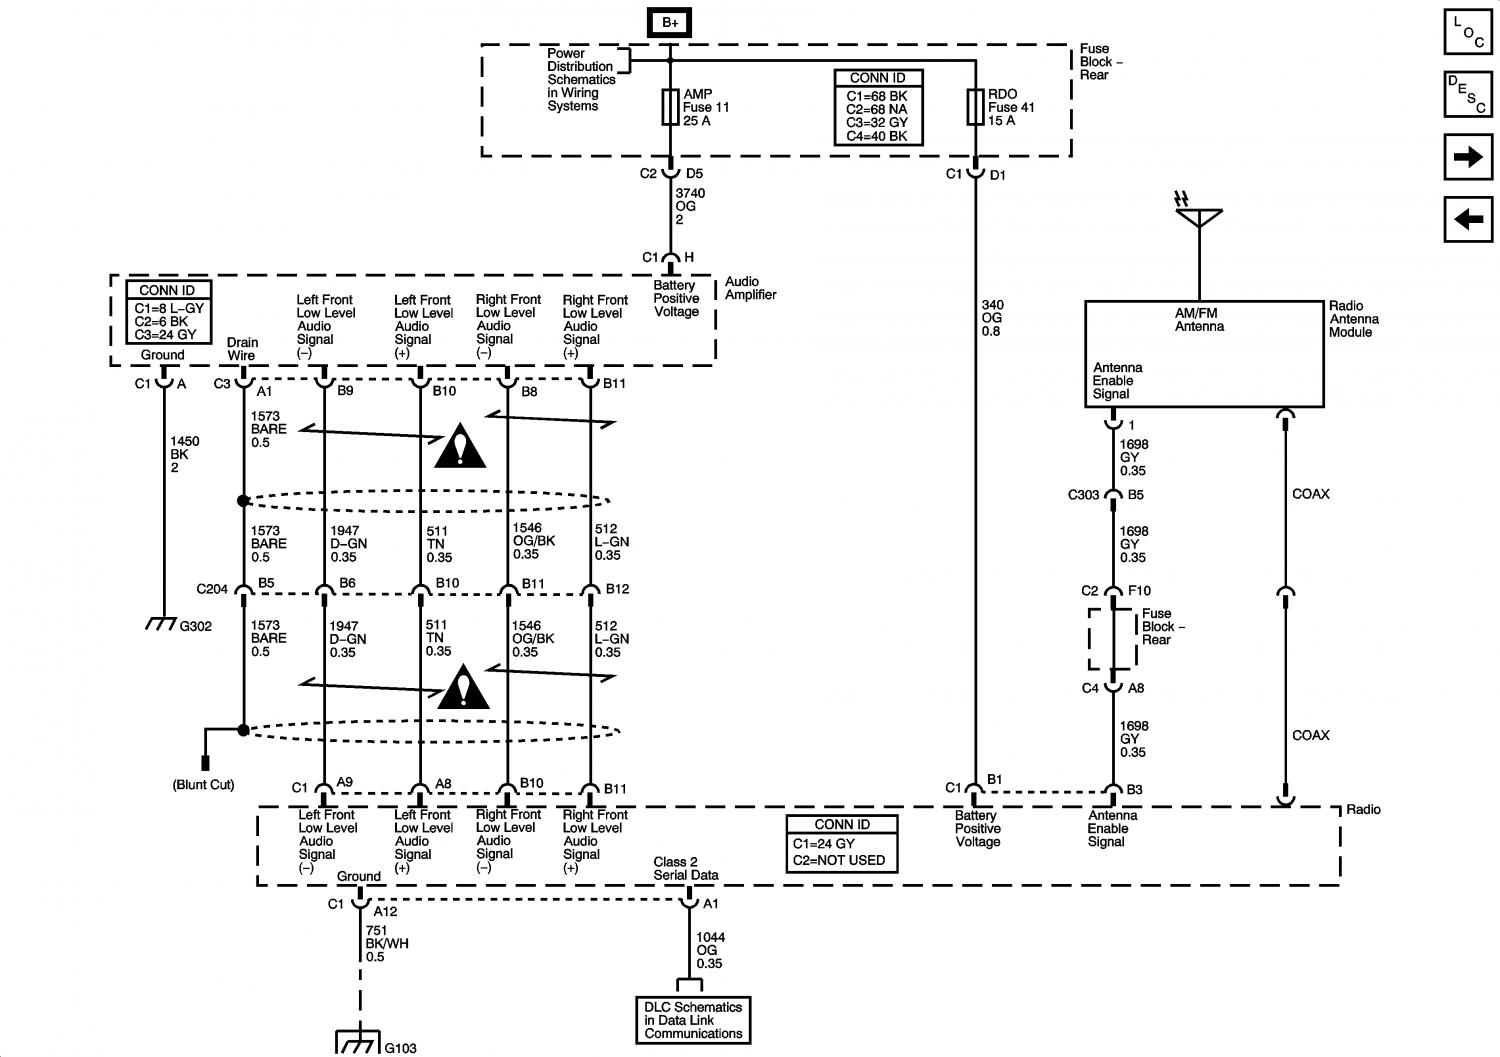 2004 Monte Carlo Coolant System Diagram Wiring Schematic Wiring Diagram Complete Complete Lionsclubviterbo It